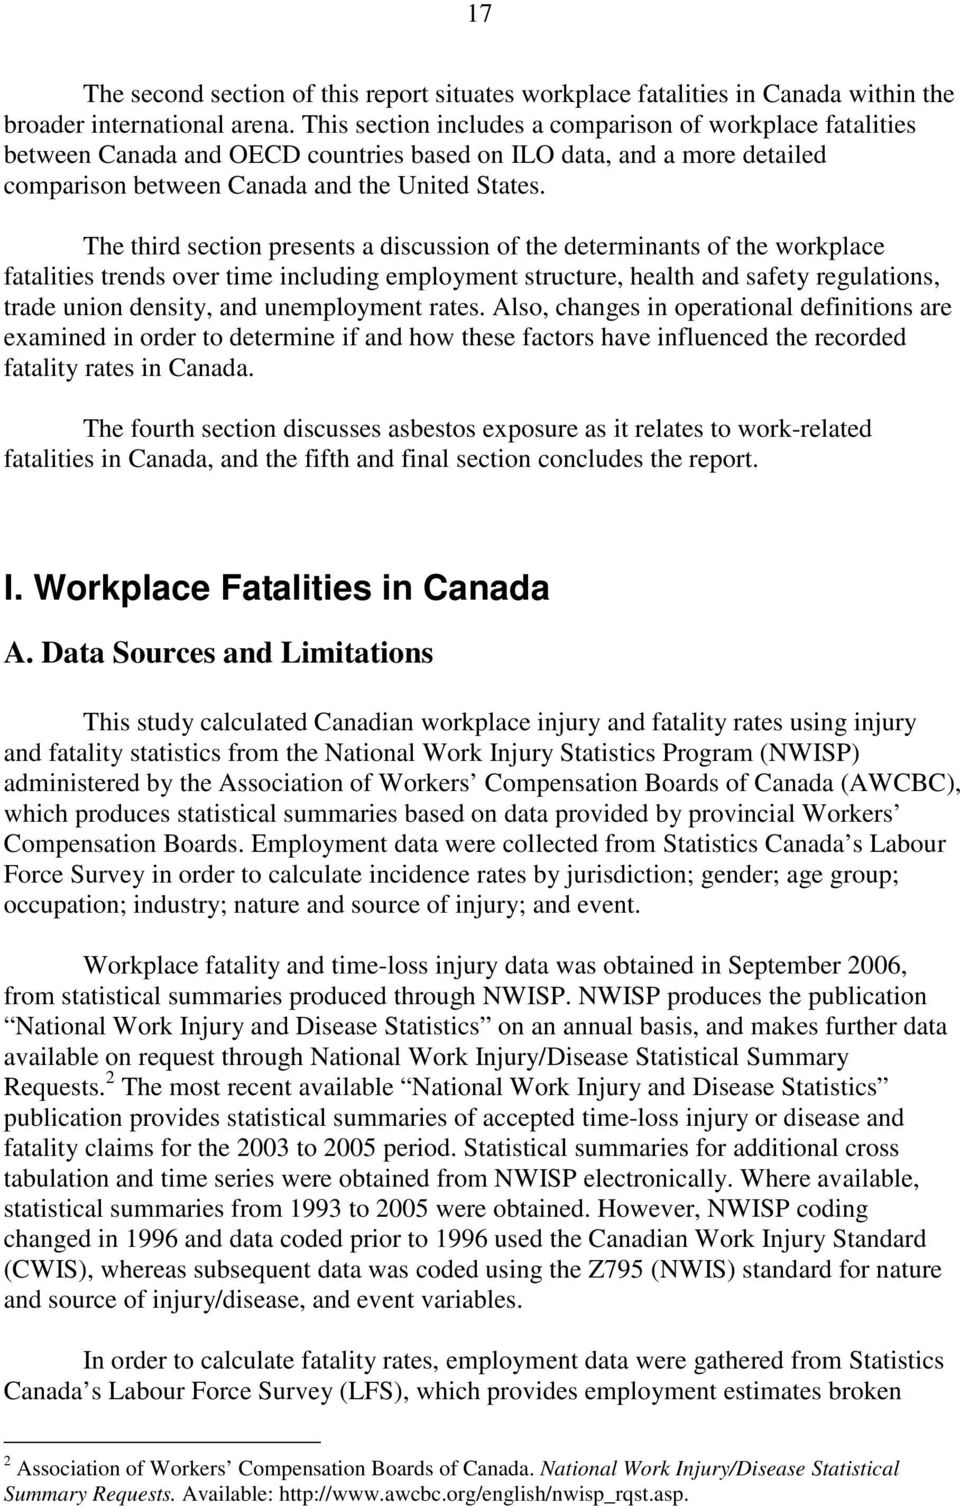 The third section presents a discussion of the determinants of the workplace fatalities trends over time including employment structure, health and safety regulations, trade union density, and